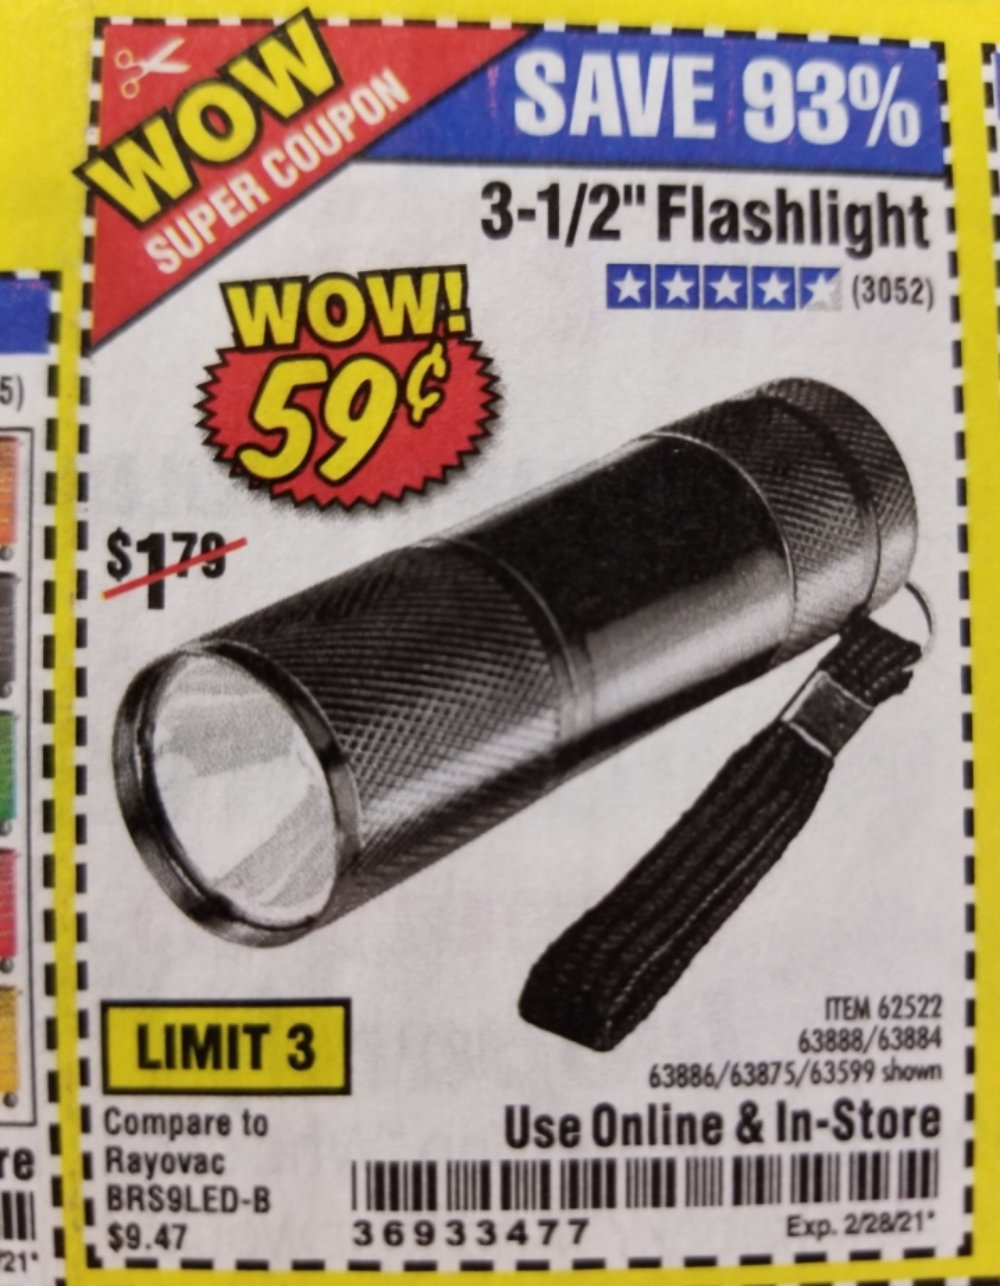 Harbor Freight Coupon, HF Coupons - 3-1/2